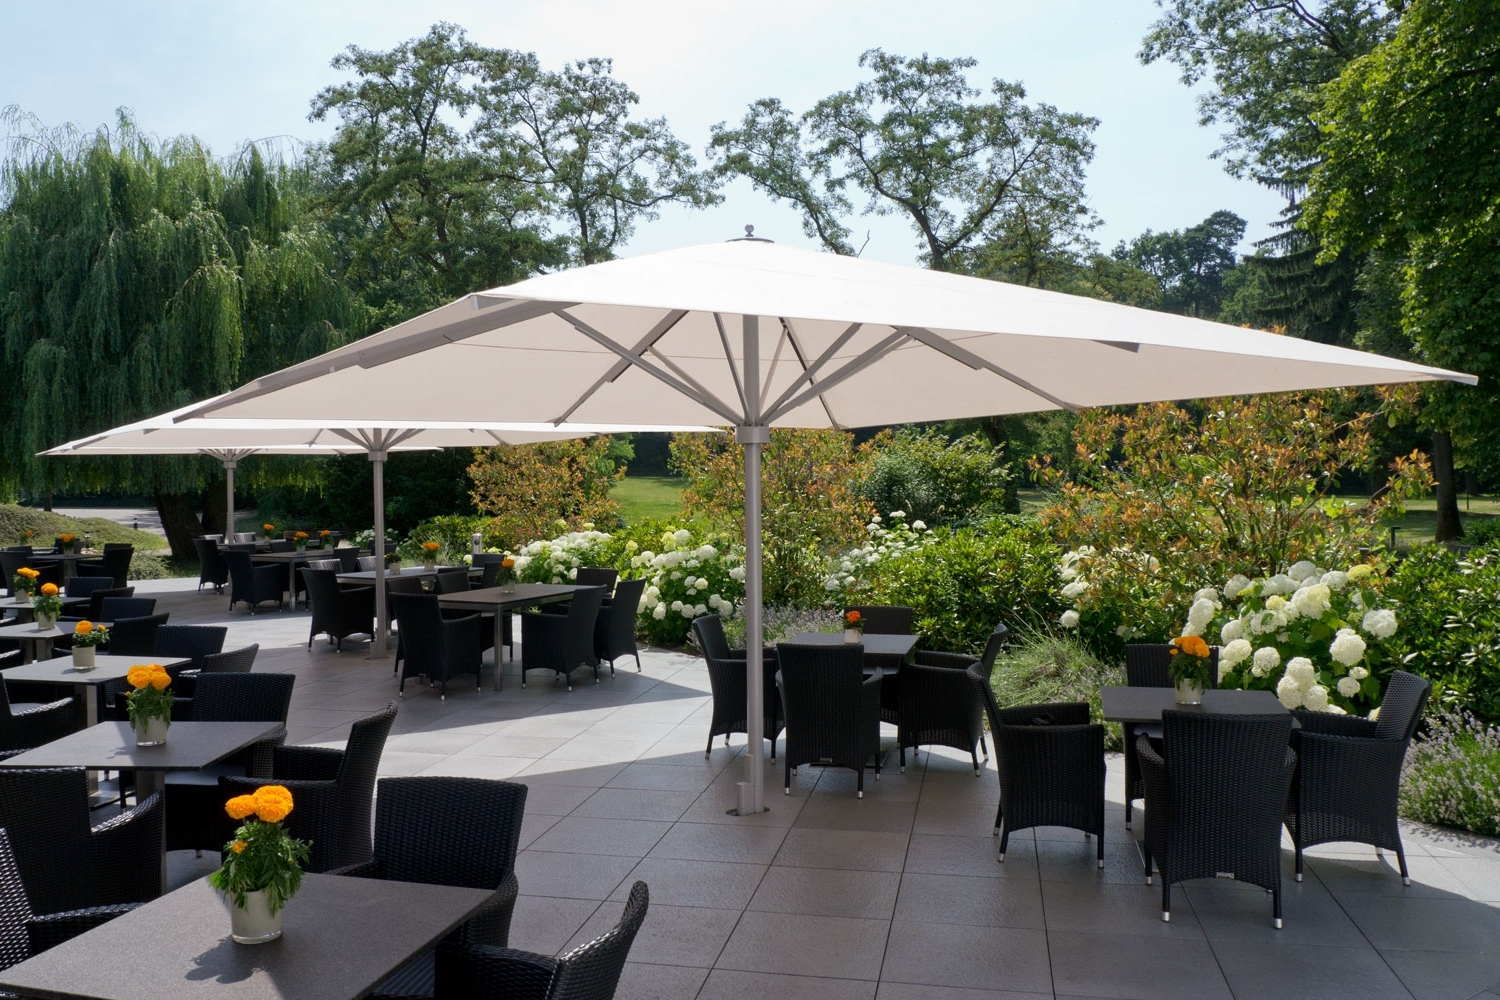 Caravita – Exclusive Commercial Patio Umbrellas In Most Up To Date Commercial Patio Umbrellas (Gallery 9 of 20)